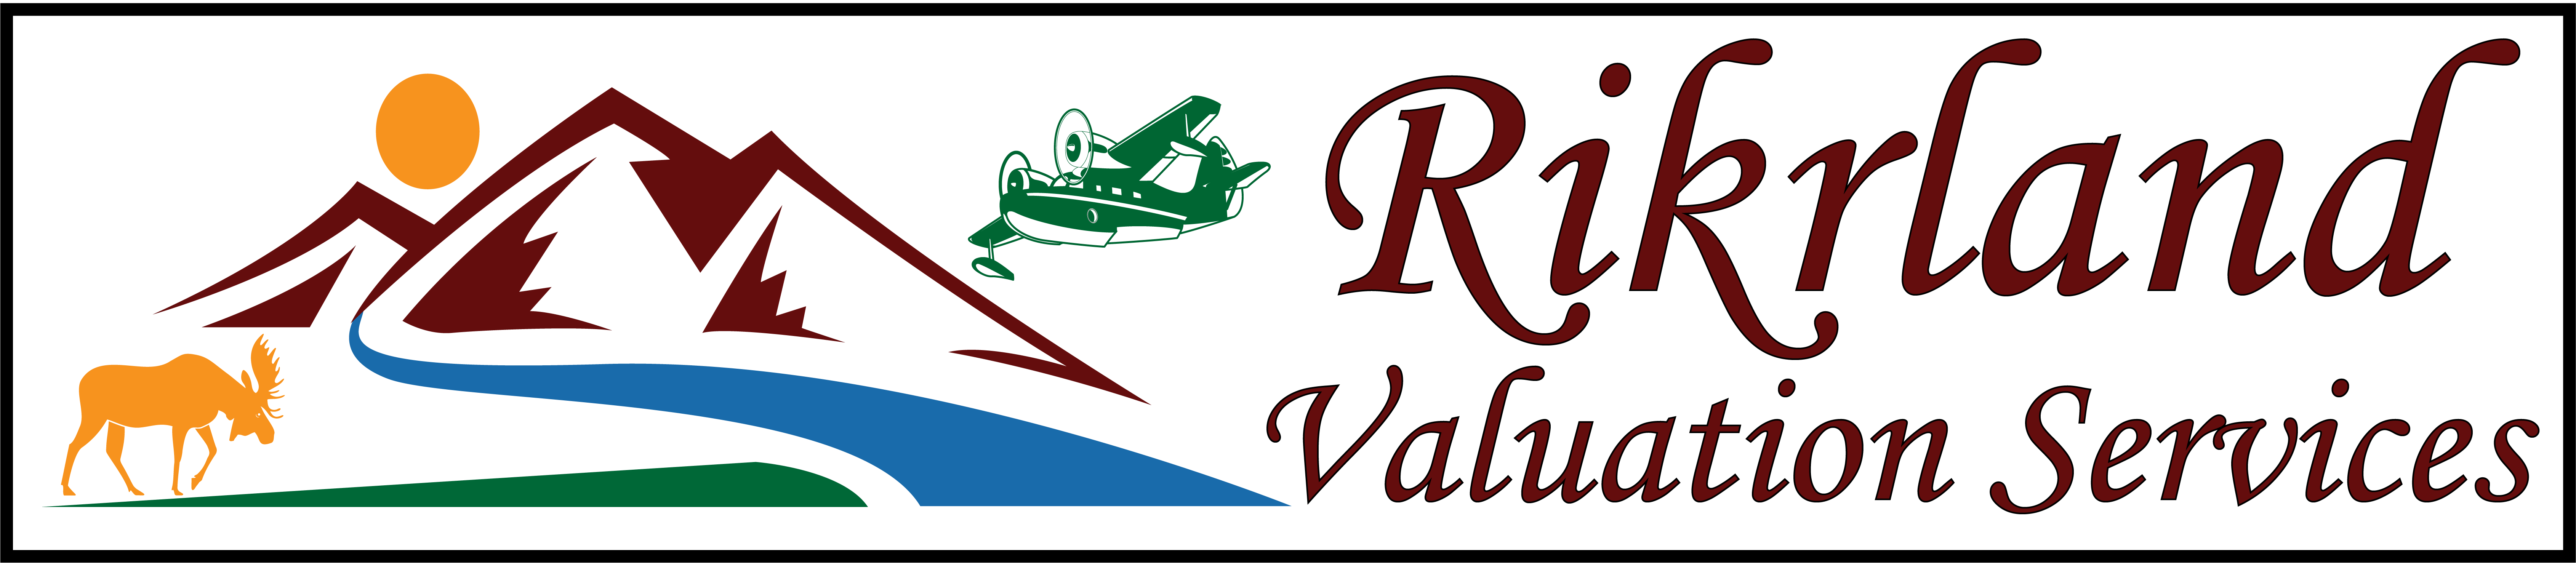 Rikrland Valuation Services, LLC